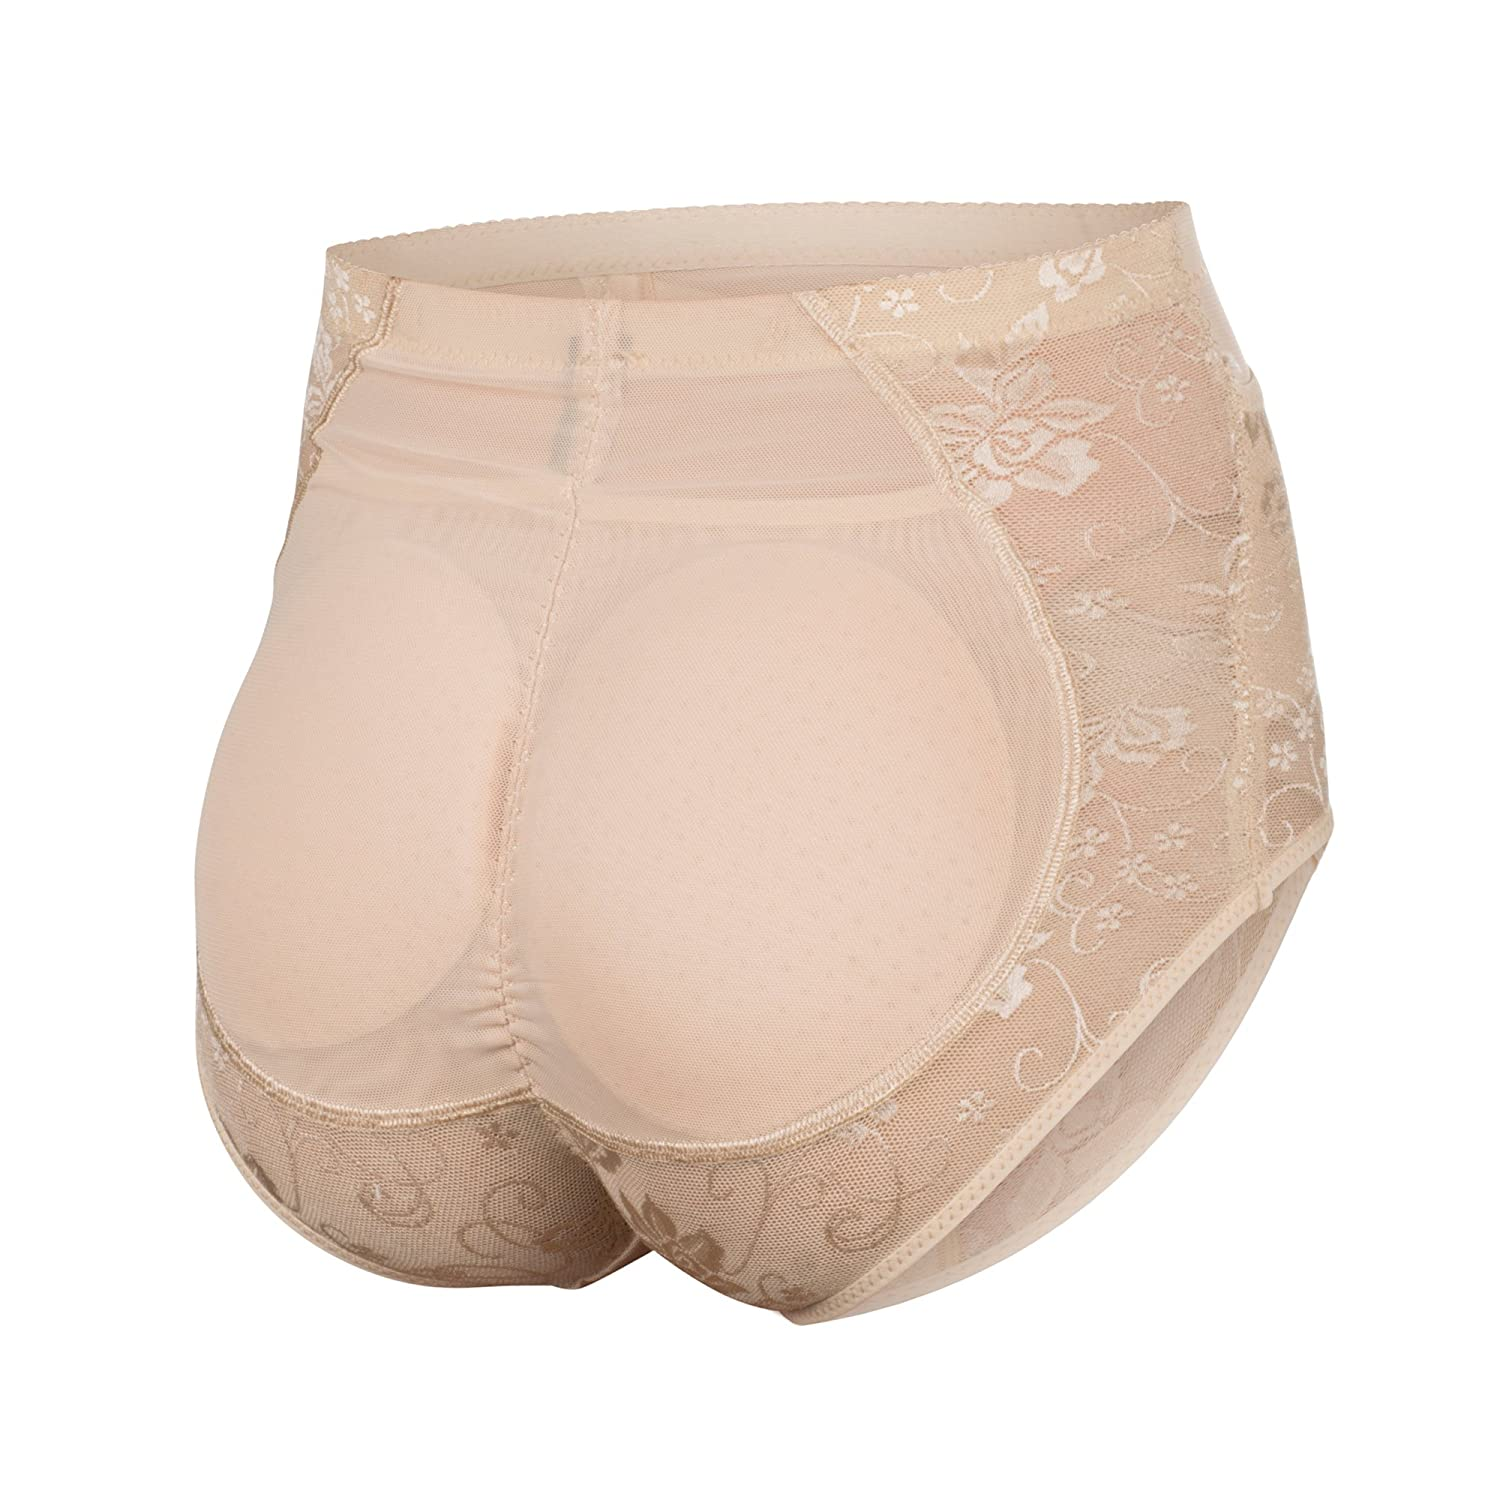 816a18ea31b1 Inteco Intimates Womens Lace Brief Shapewear with Butt Enhancer Girdle:  Amazon.ca: Clothing & Accessories